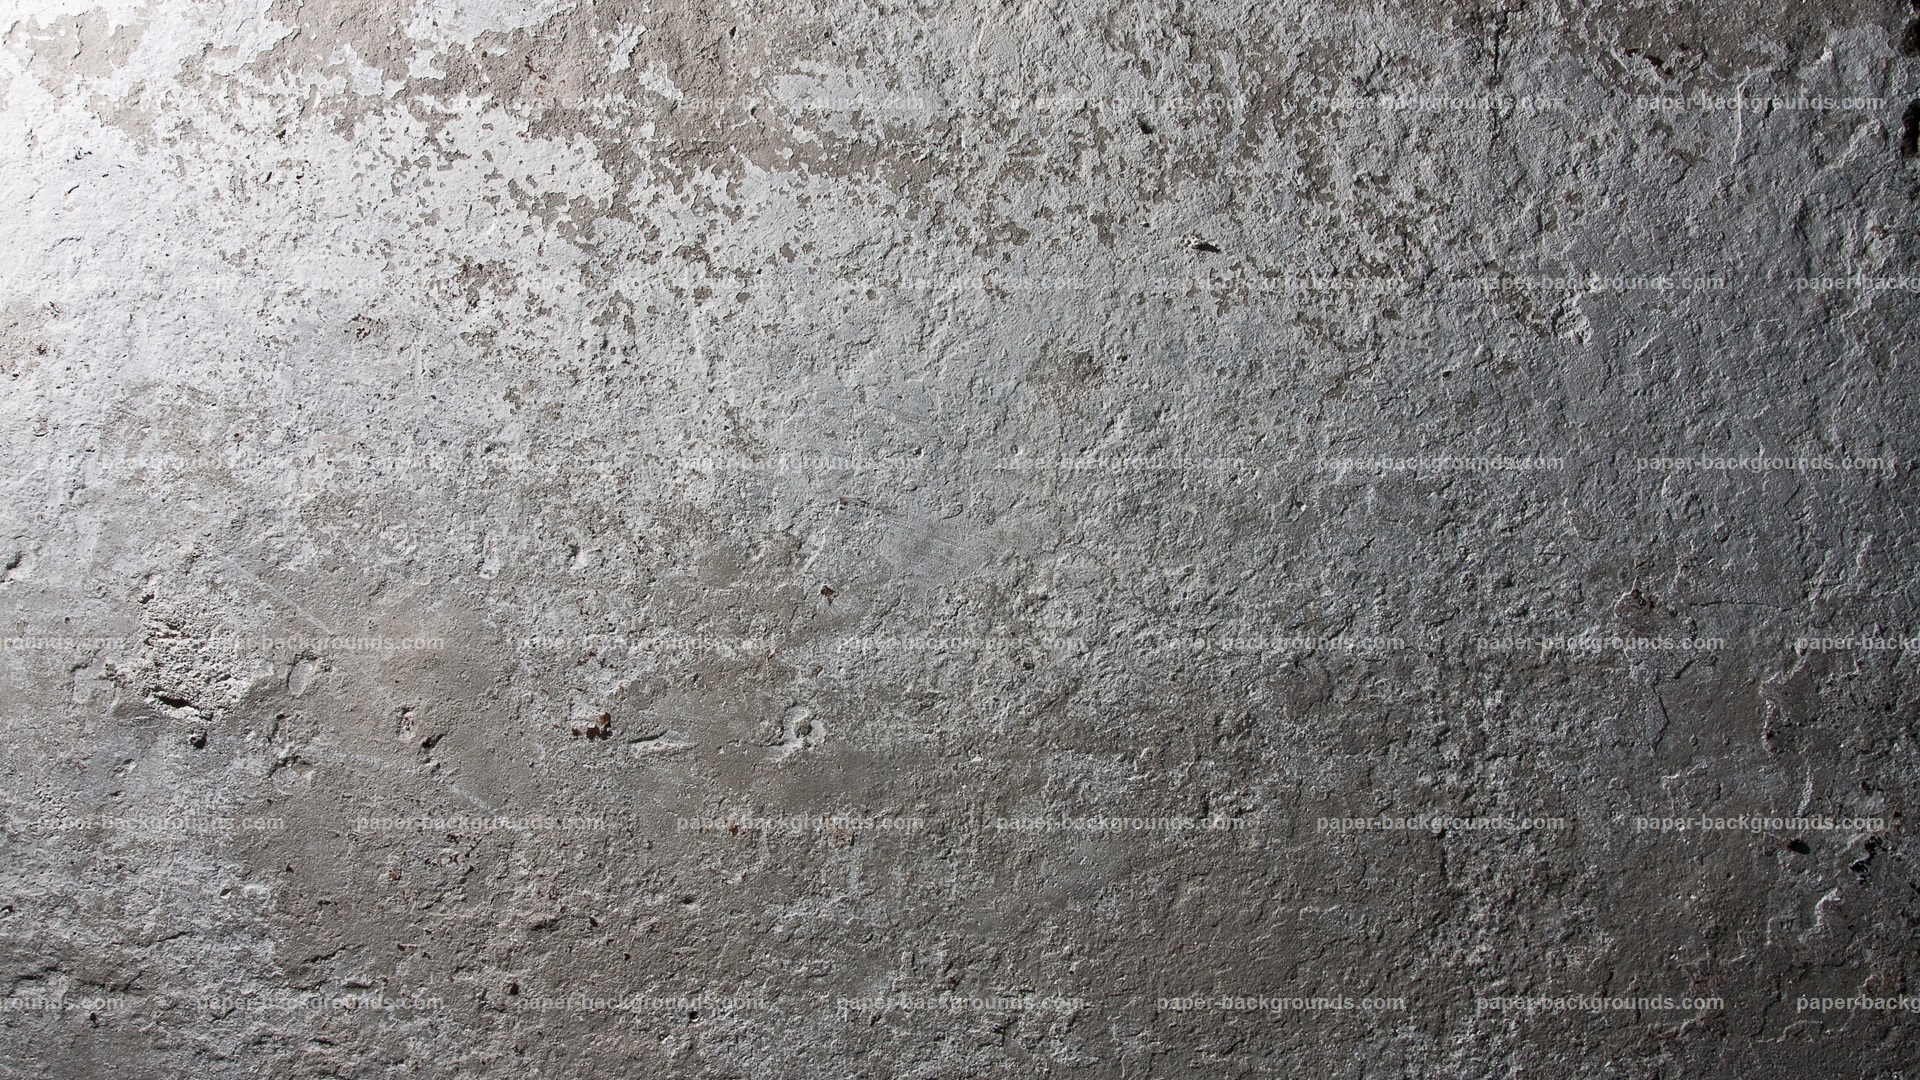 Paper Backgrounds Gray Concrete Wall Background Hd